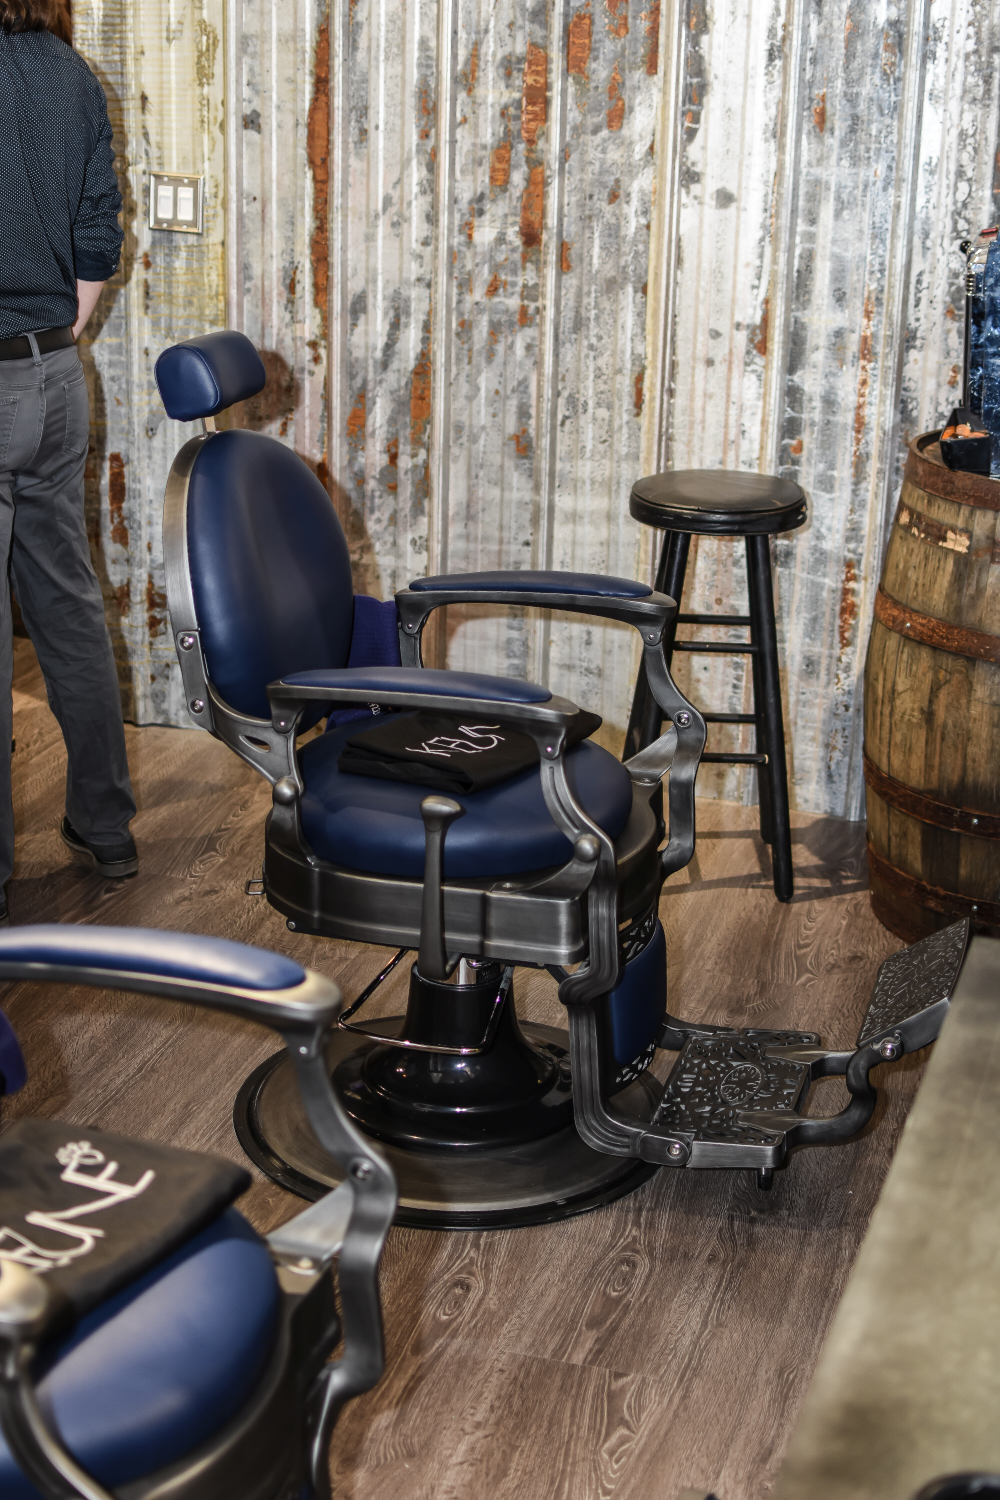 The barber stations at the new 1922 Men's Grooming Salon in Woodstock, Georgia.